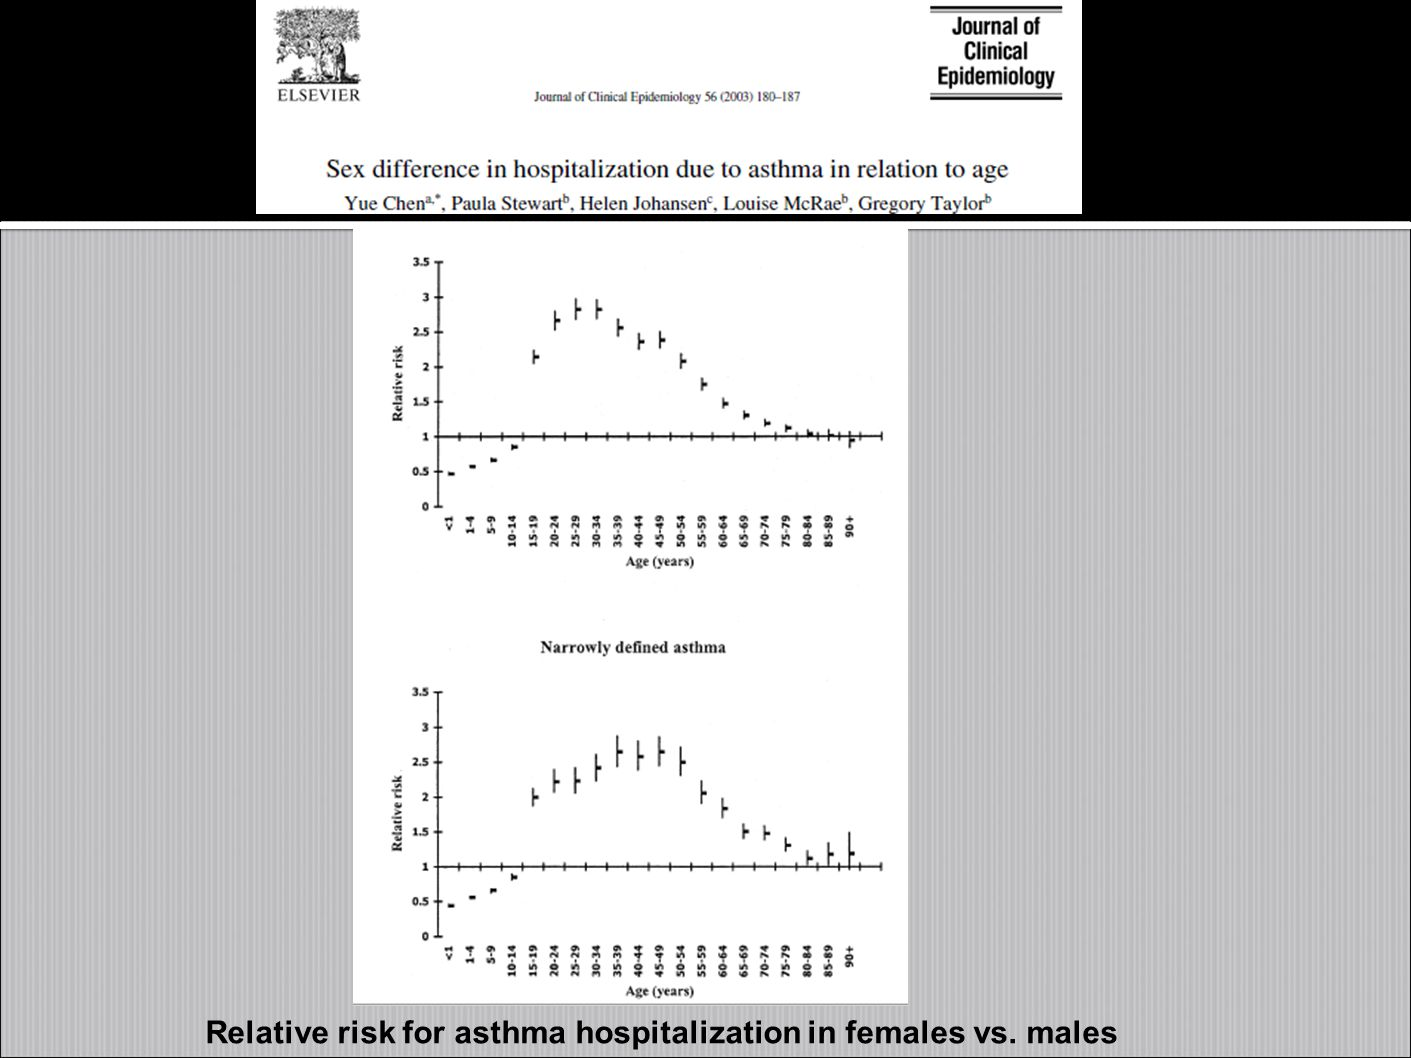 Relative risk for asthma hospitalization in females vs. males